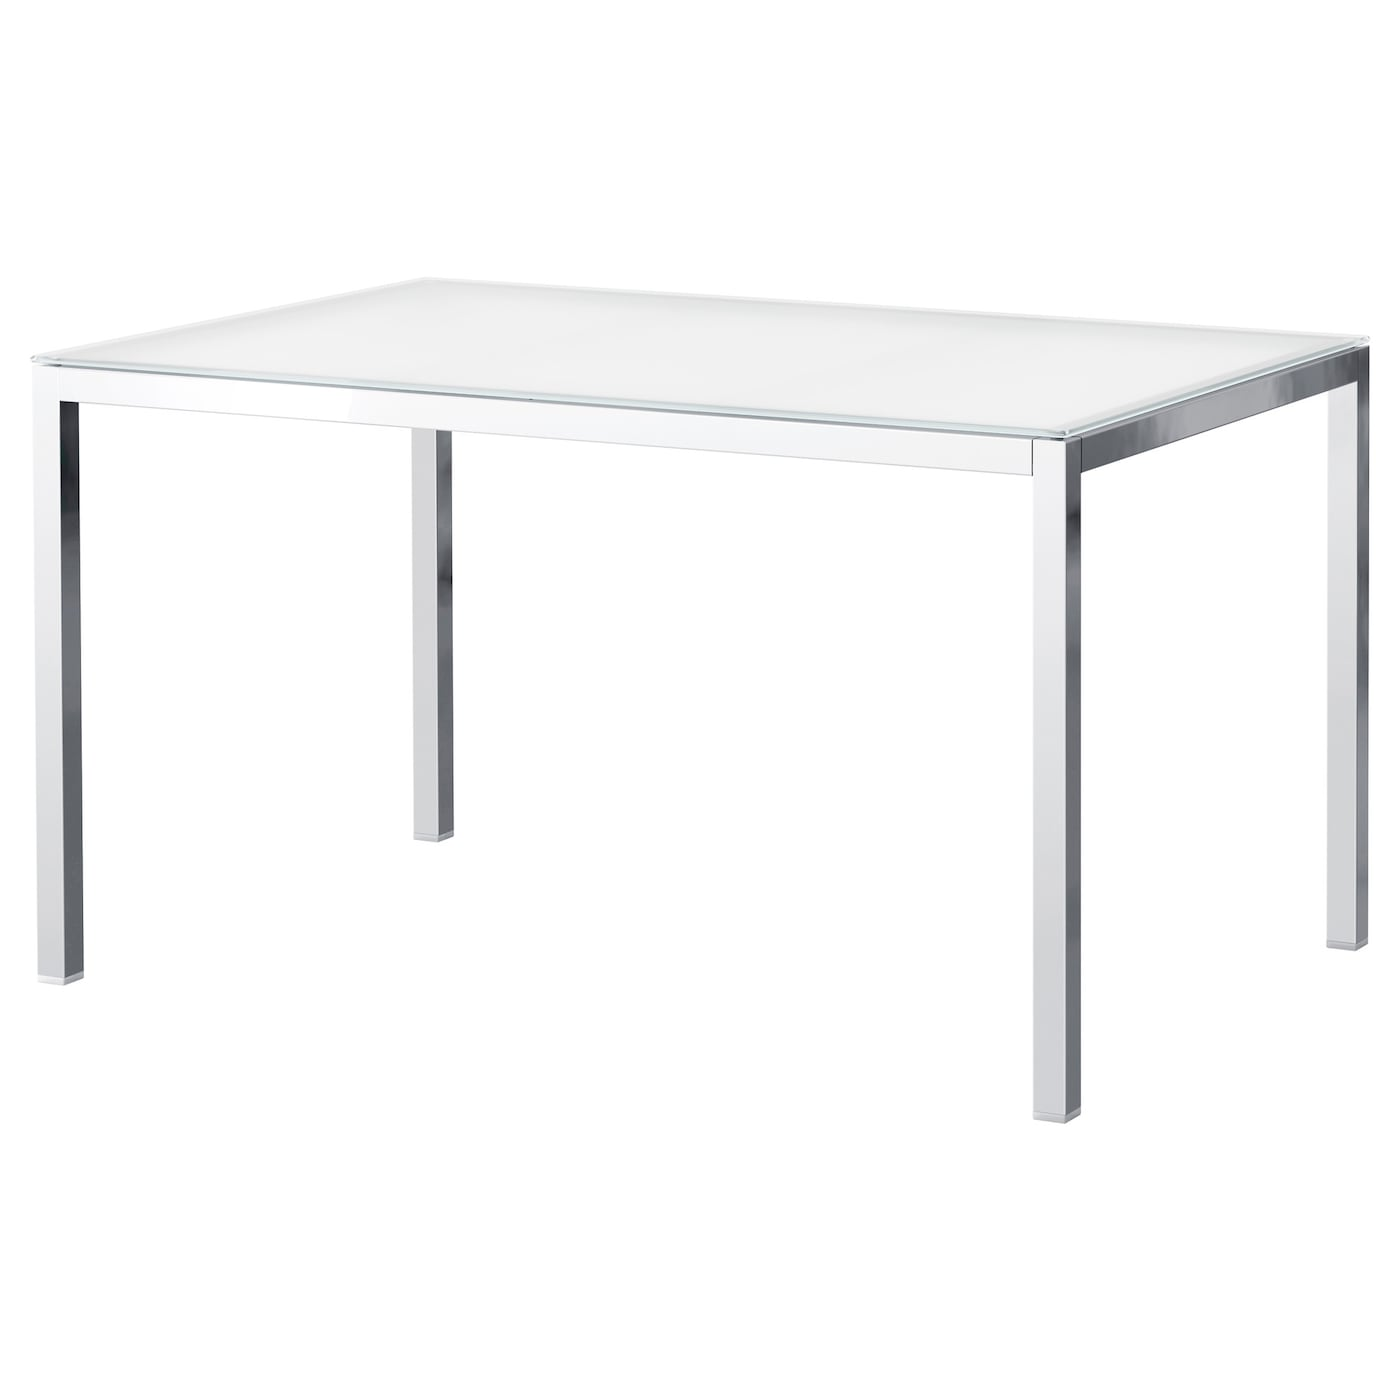 Ikea glass kitchen table - Ikea Torsby Table Seats 4